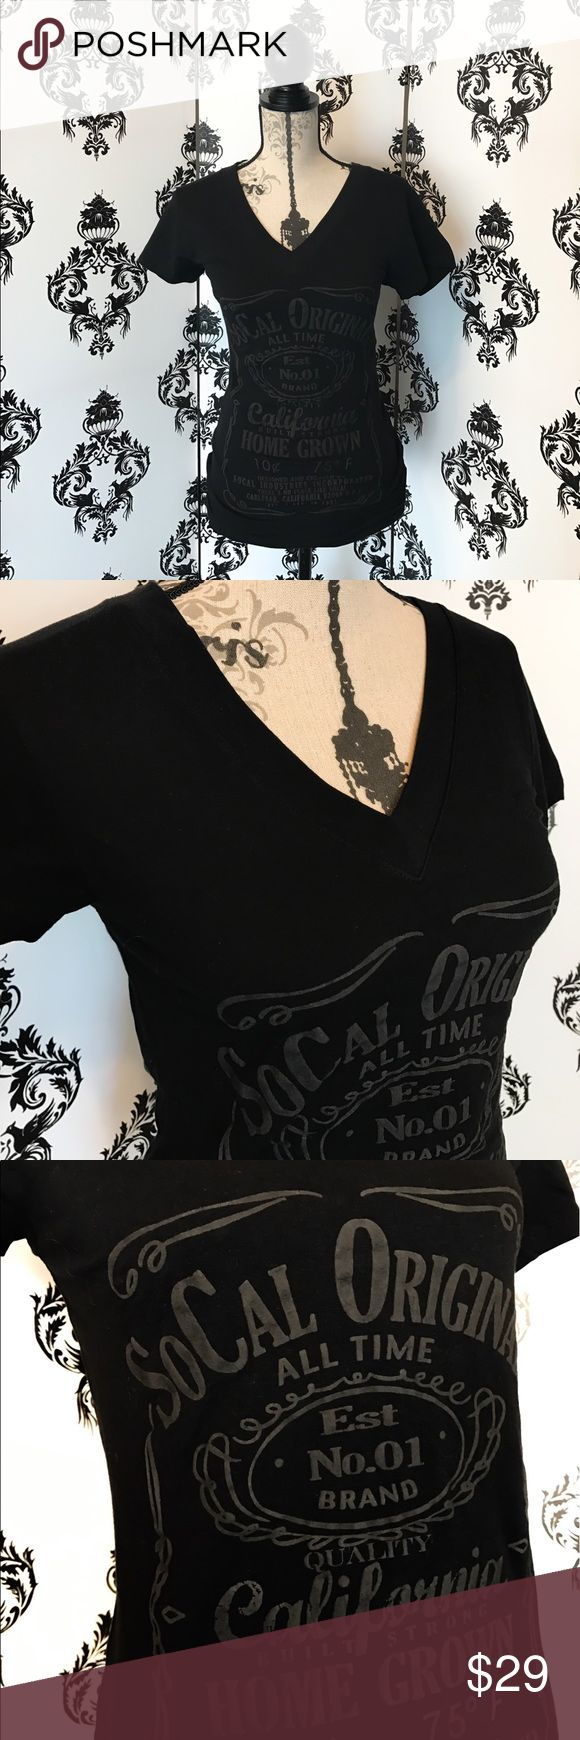 NWT! 🍀 So Cal Jack Daniels Style shirt! This shirt is so stylish and cool with the Jack Daniels style label printed on the front. The font  is a puffy raised 3D style grey font. The shirt is stretchy for a great fit! Brand new with tags! Smoke free home. Tops Tees - Short Sleeve